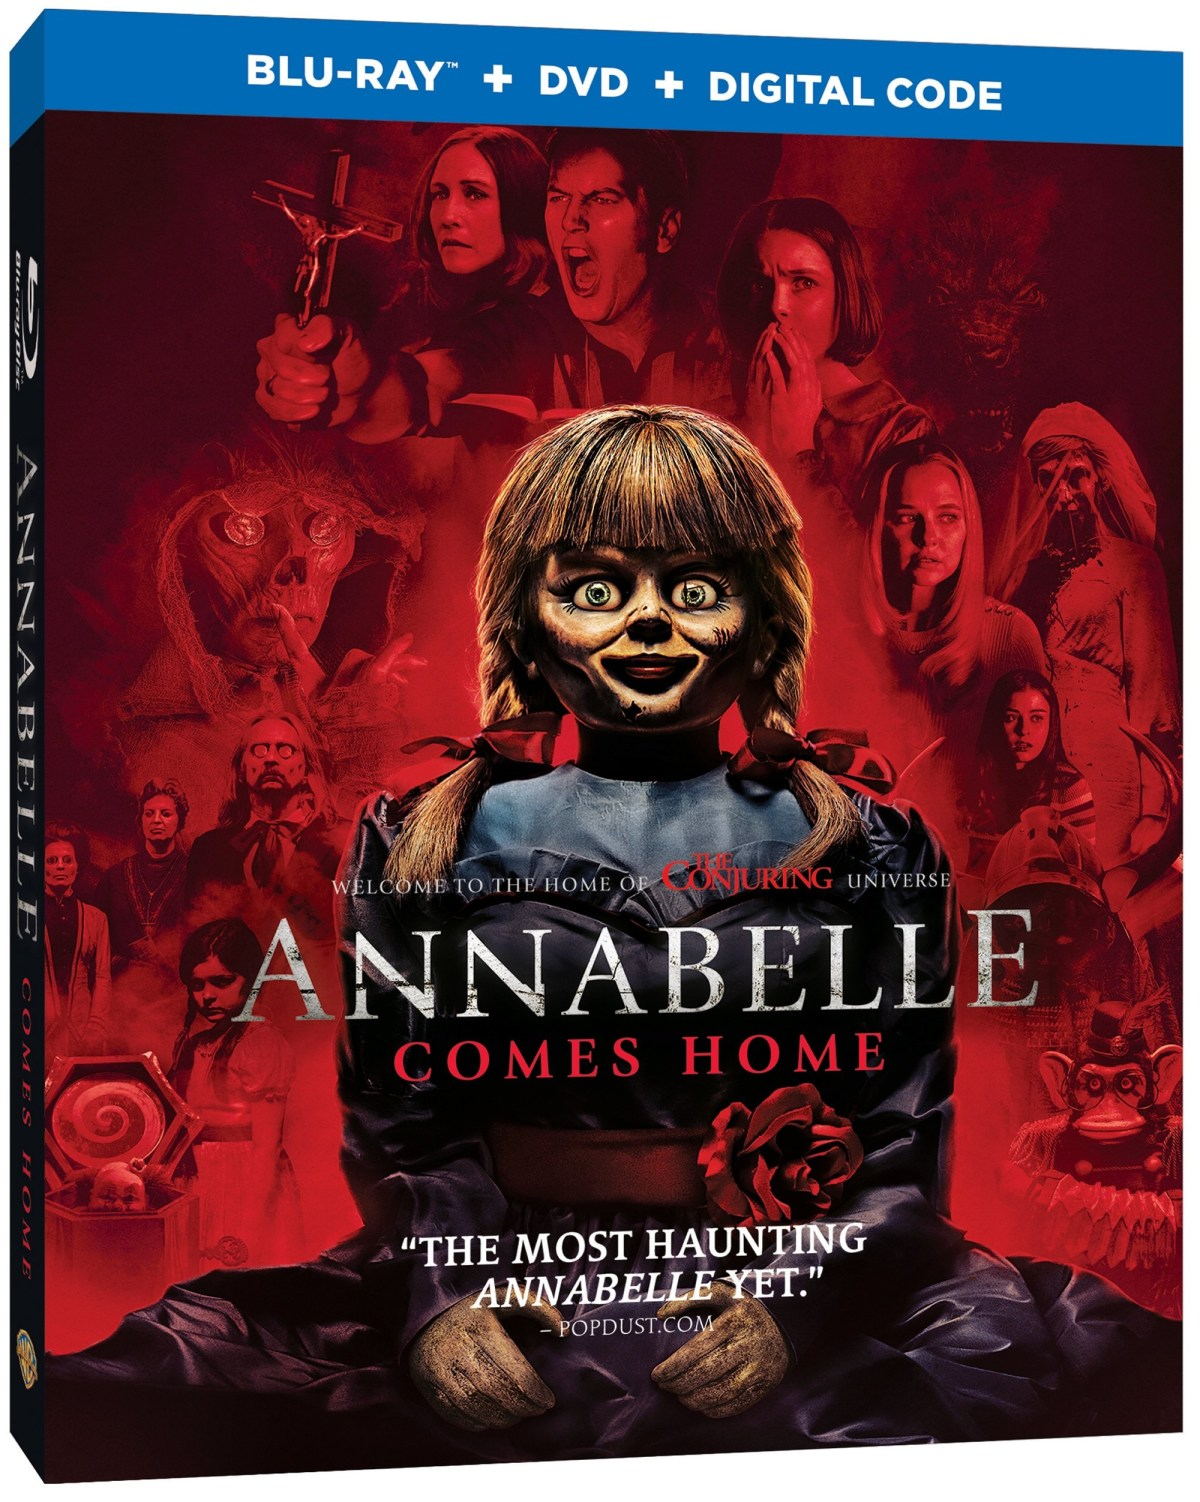 Blu ray artwork for ANNABELLE COMES HOME